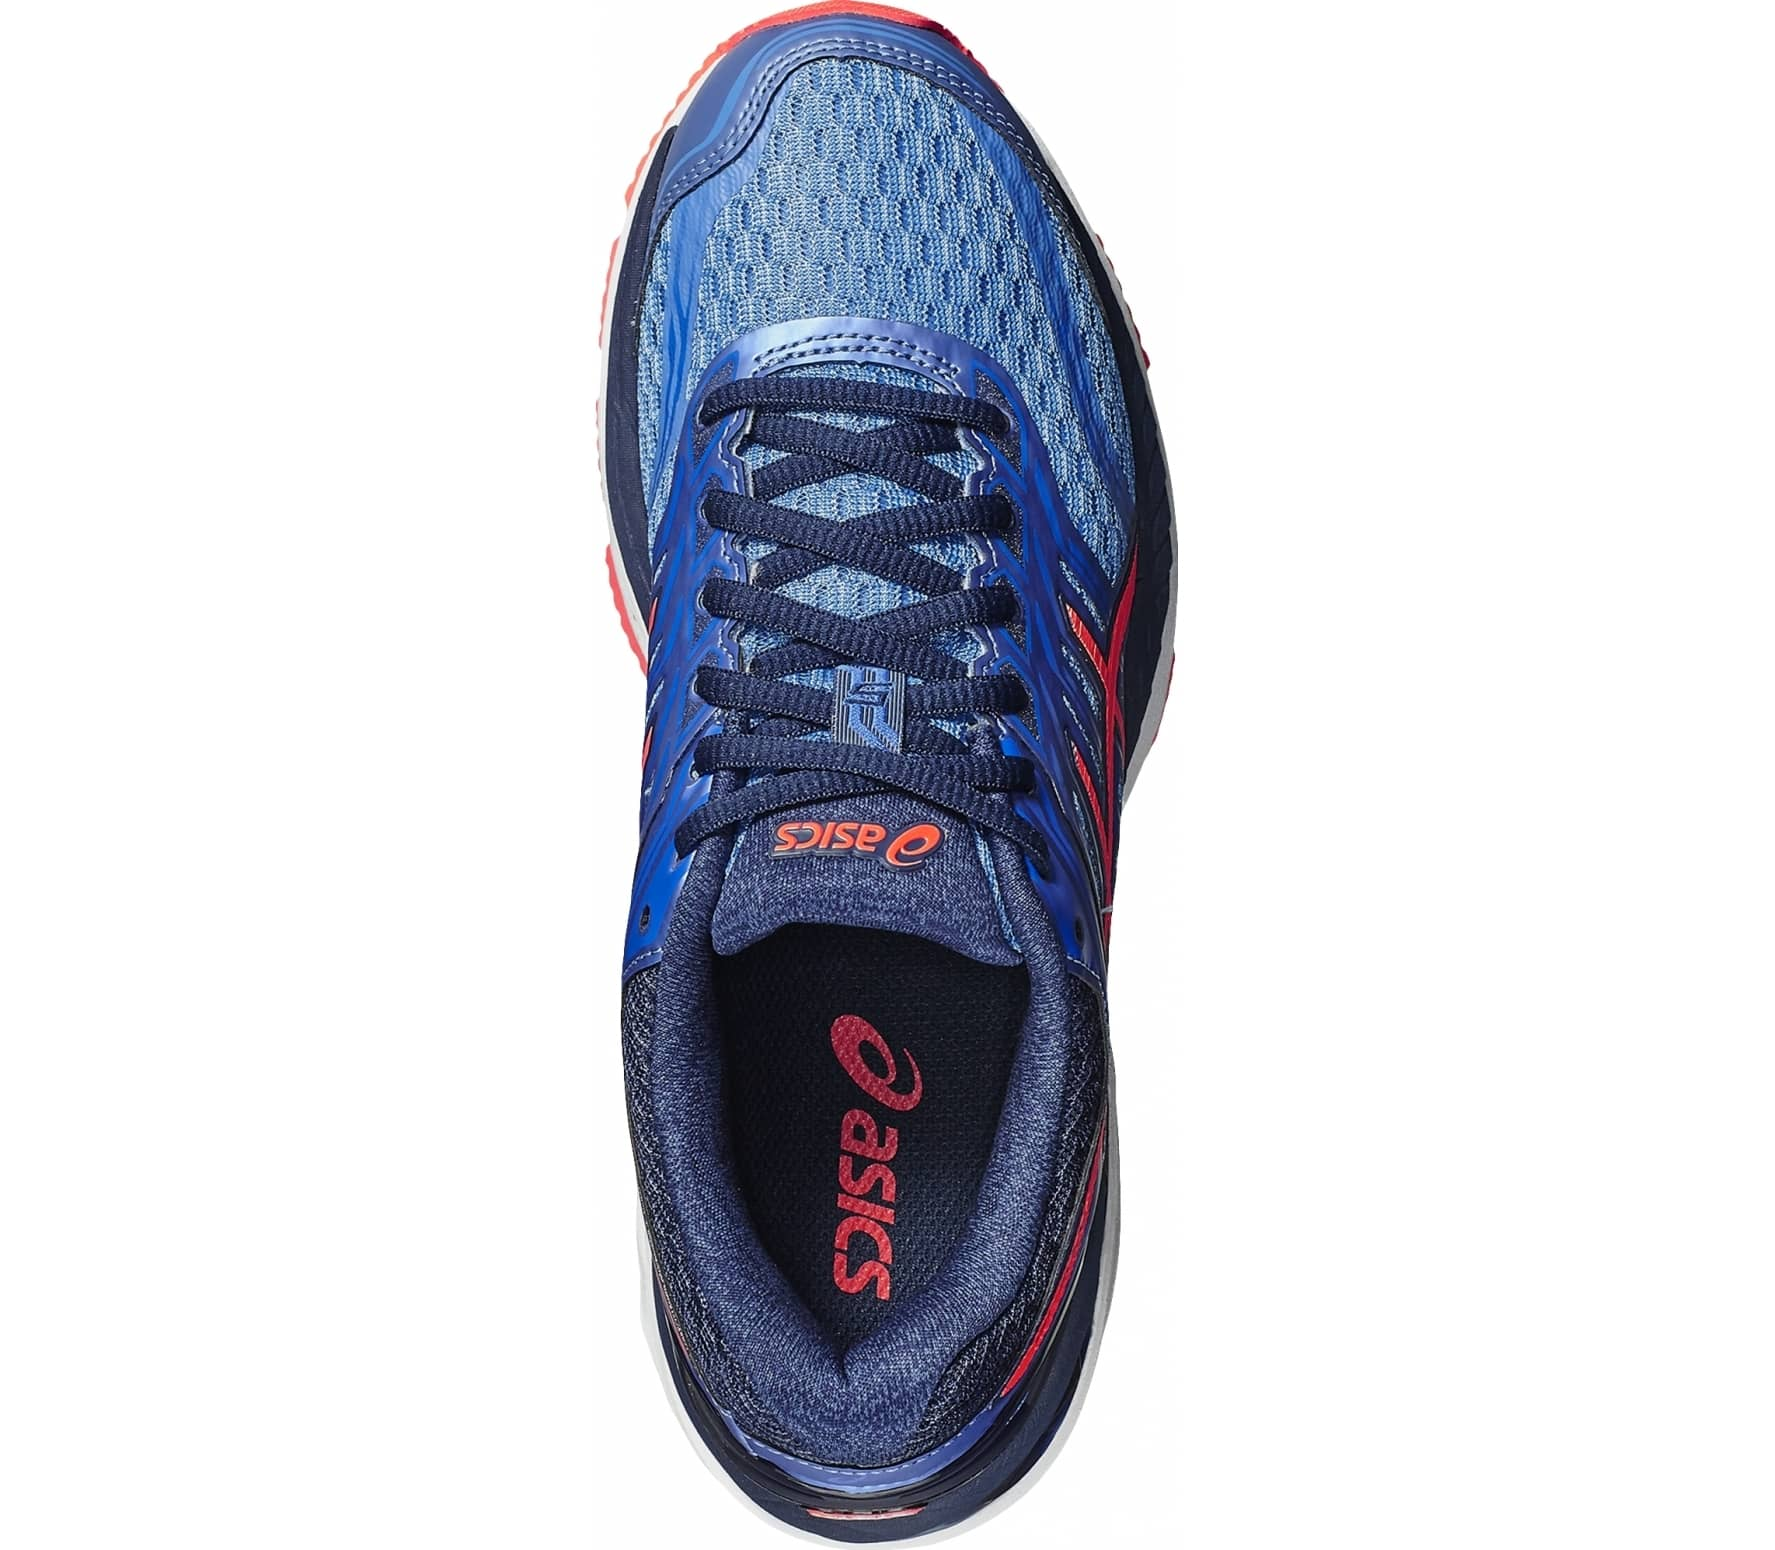 ASICS Gt 2000 5 extra schmal (2A) women's running shoes (bluecoral)